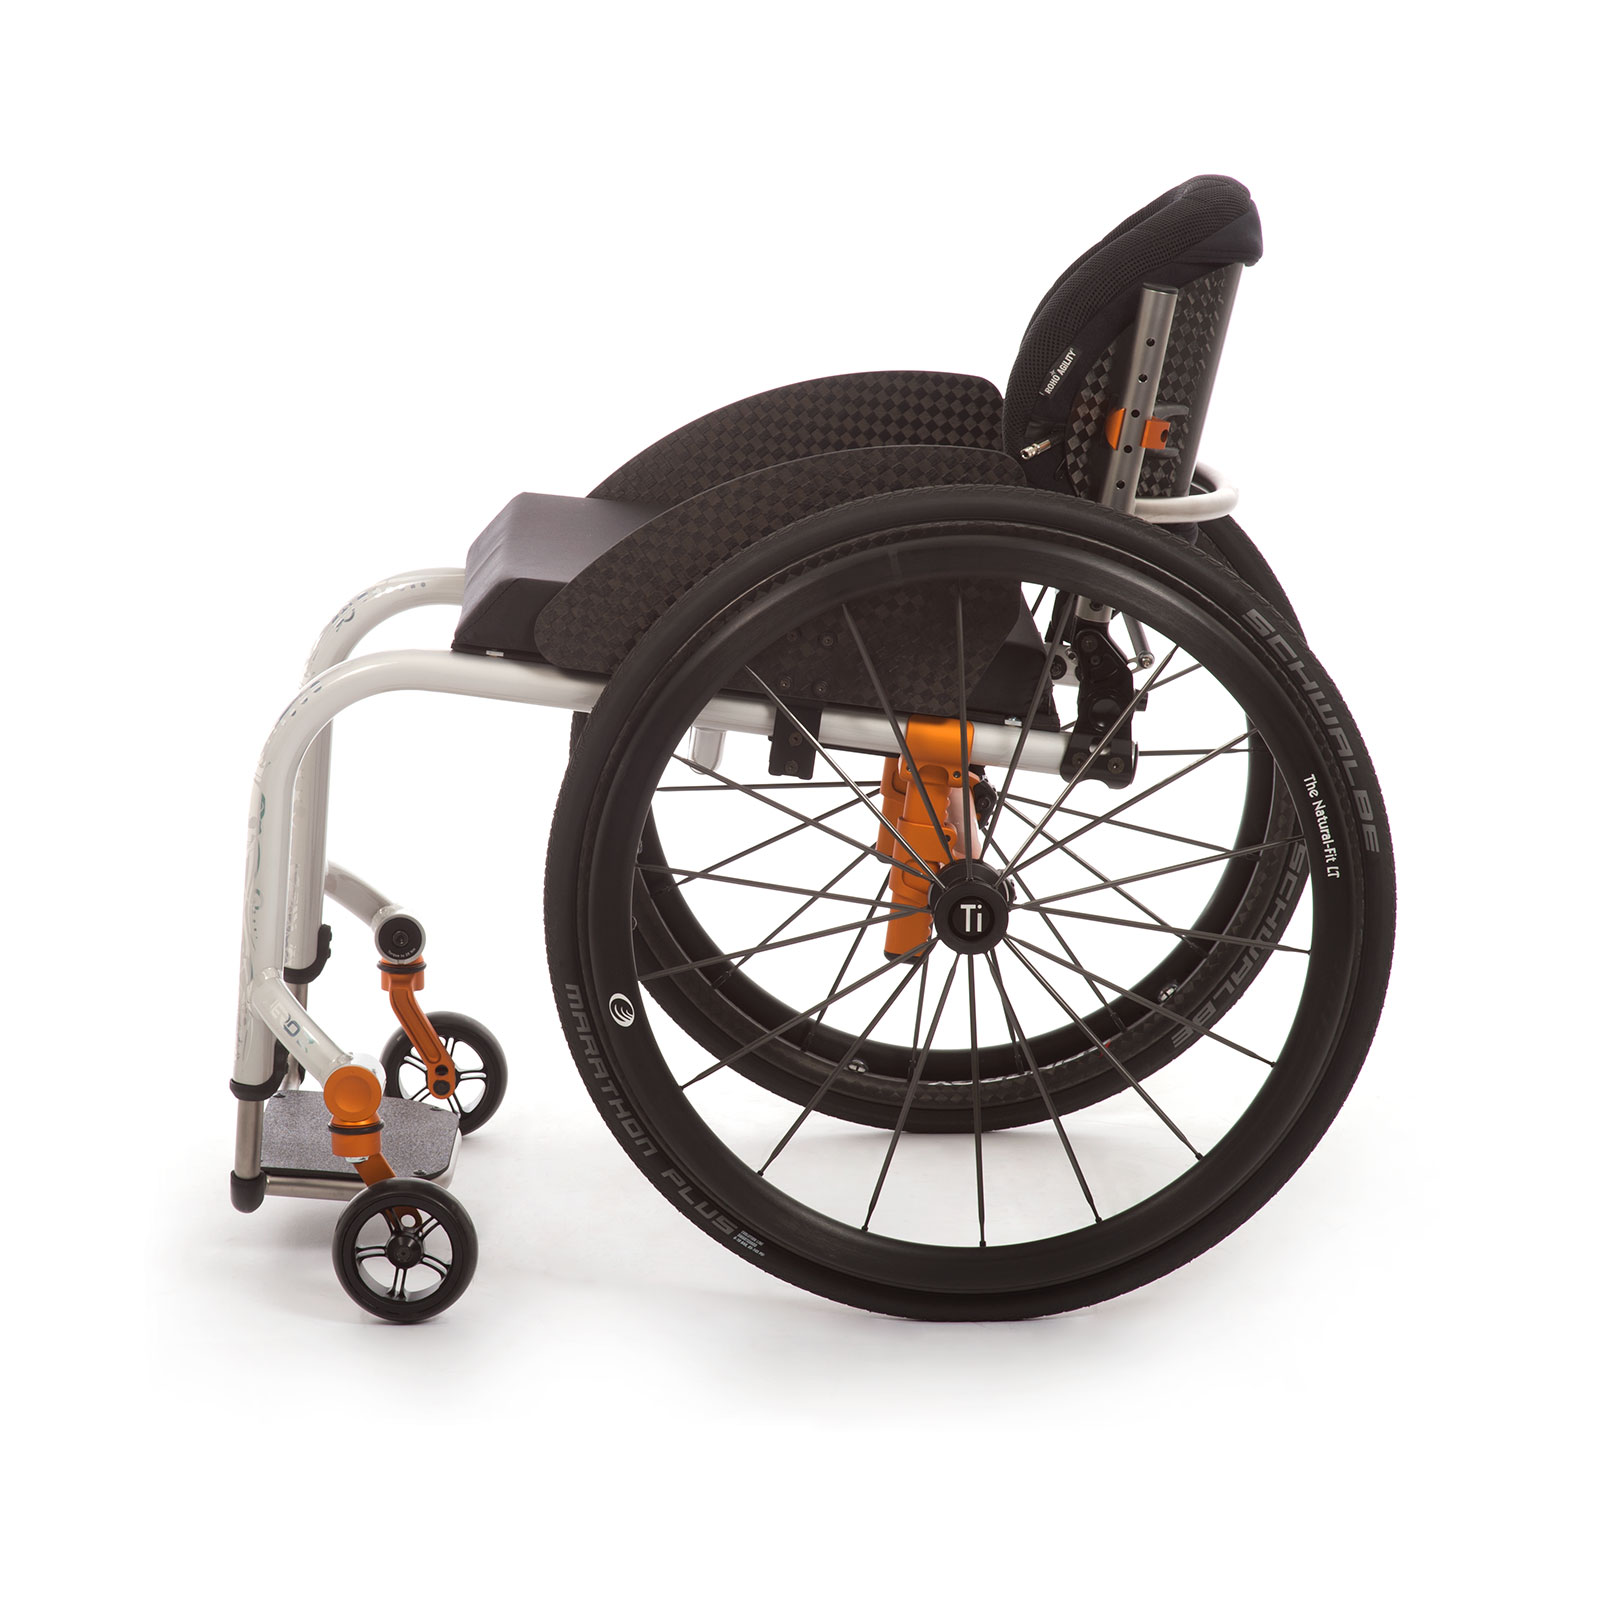 The Left Side of Black-Orange Wheelchair.